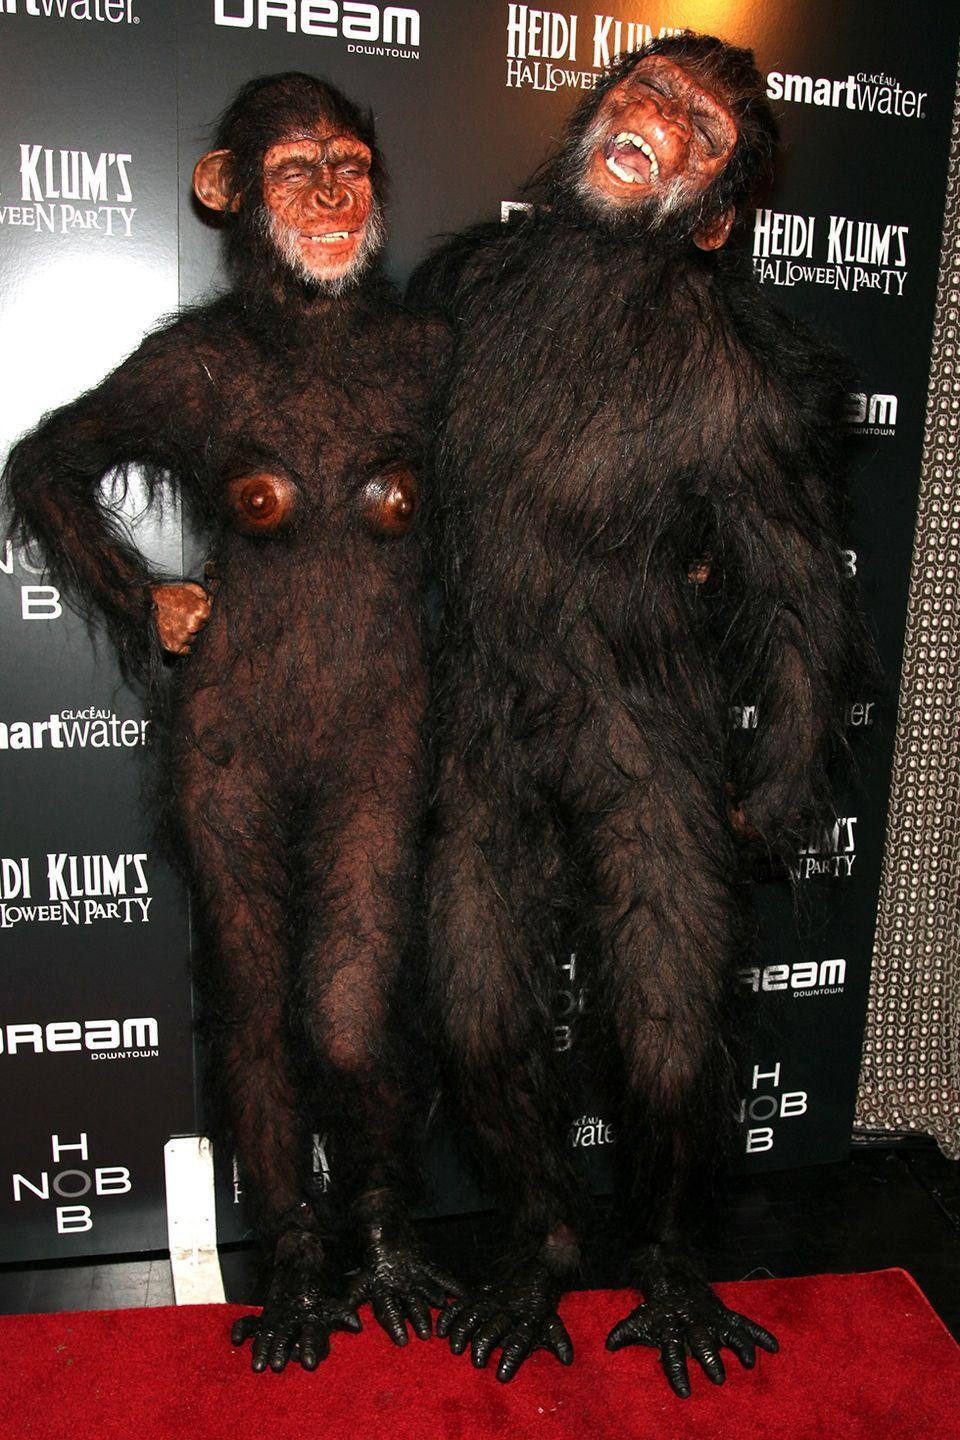 <p>Speaking of Heidi Klum, she and her then-husband Seal went for another animal-inspired ensemble for her 2011 Halloween party. </p>